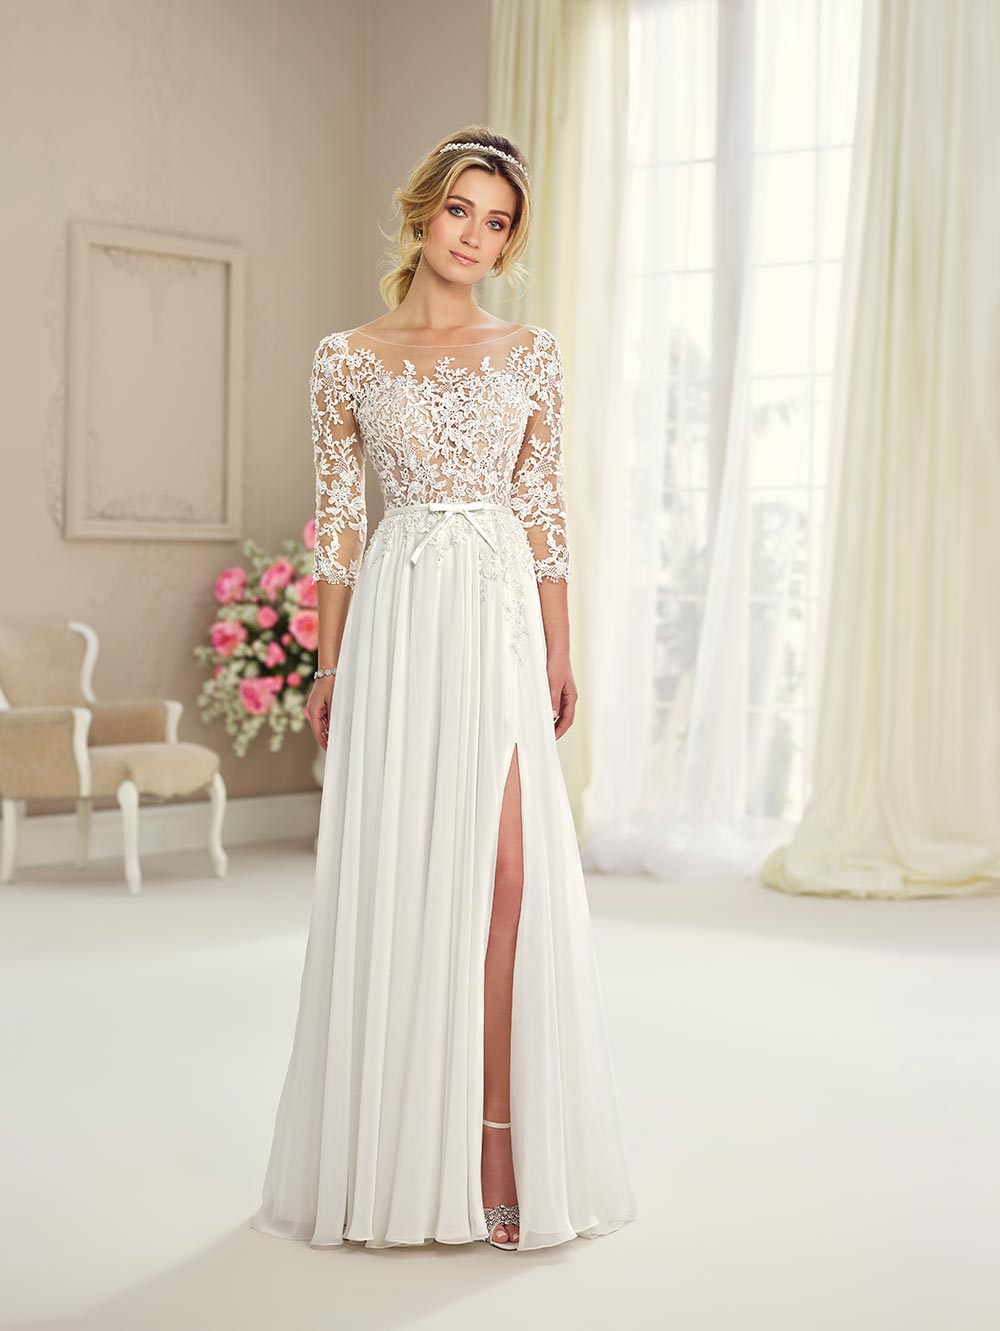 These 7 Sleeved Wedding Dresses Will Make You Forget About